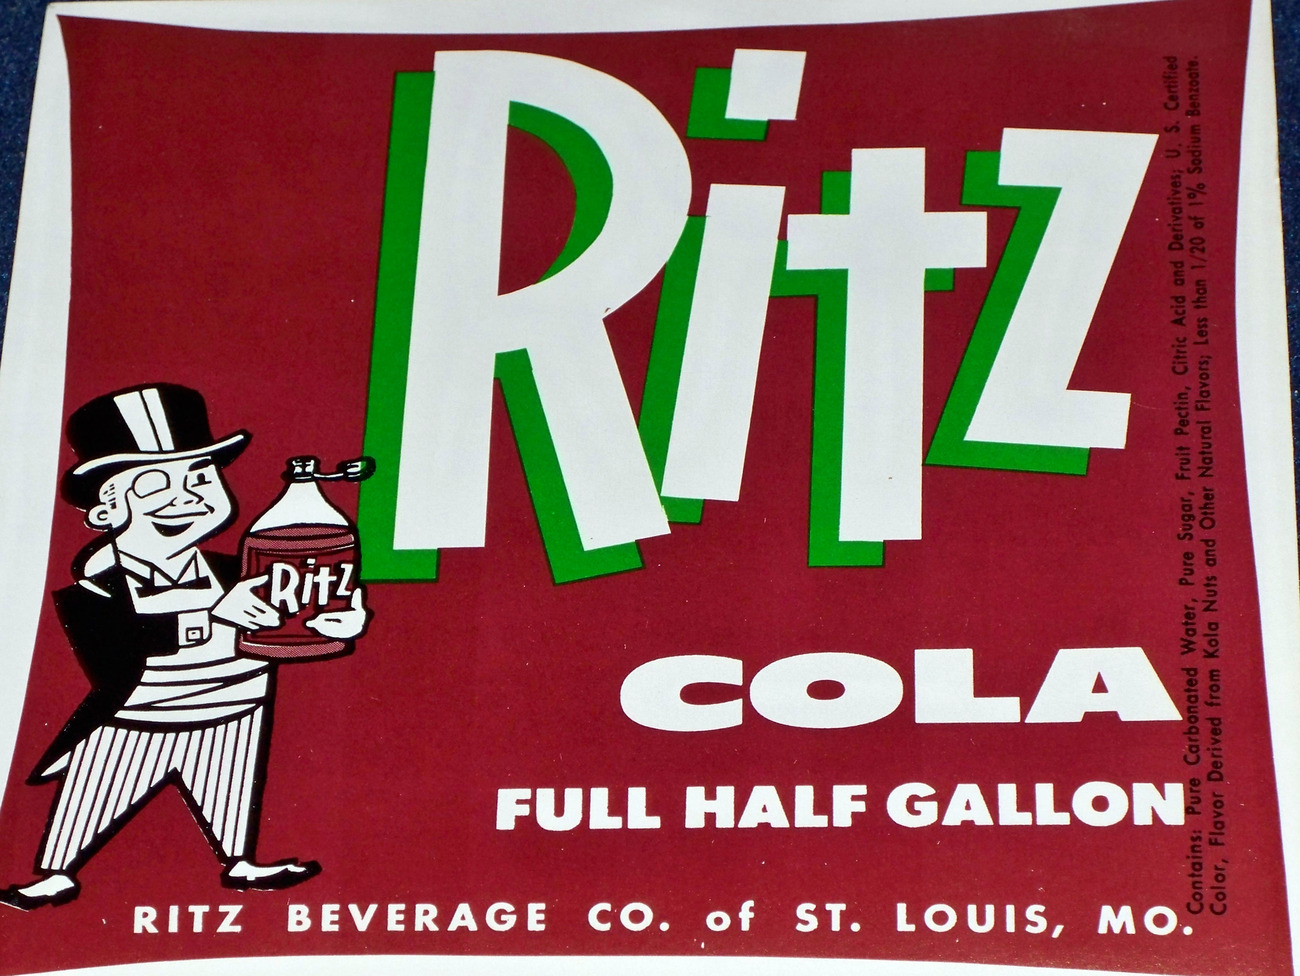 Attractive and Bold! Large Ritz Cola Label, 1950's